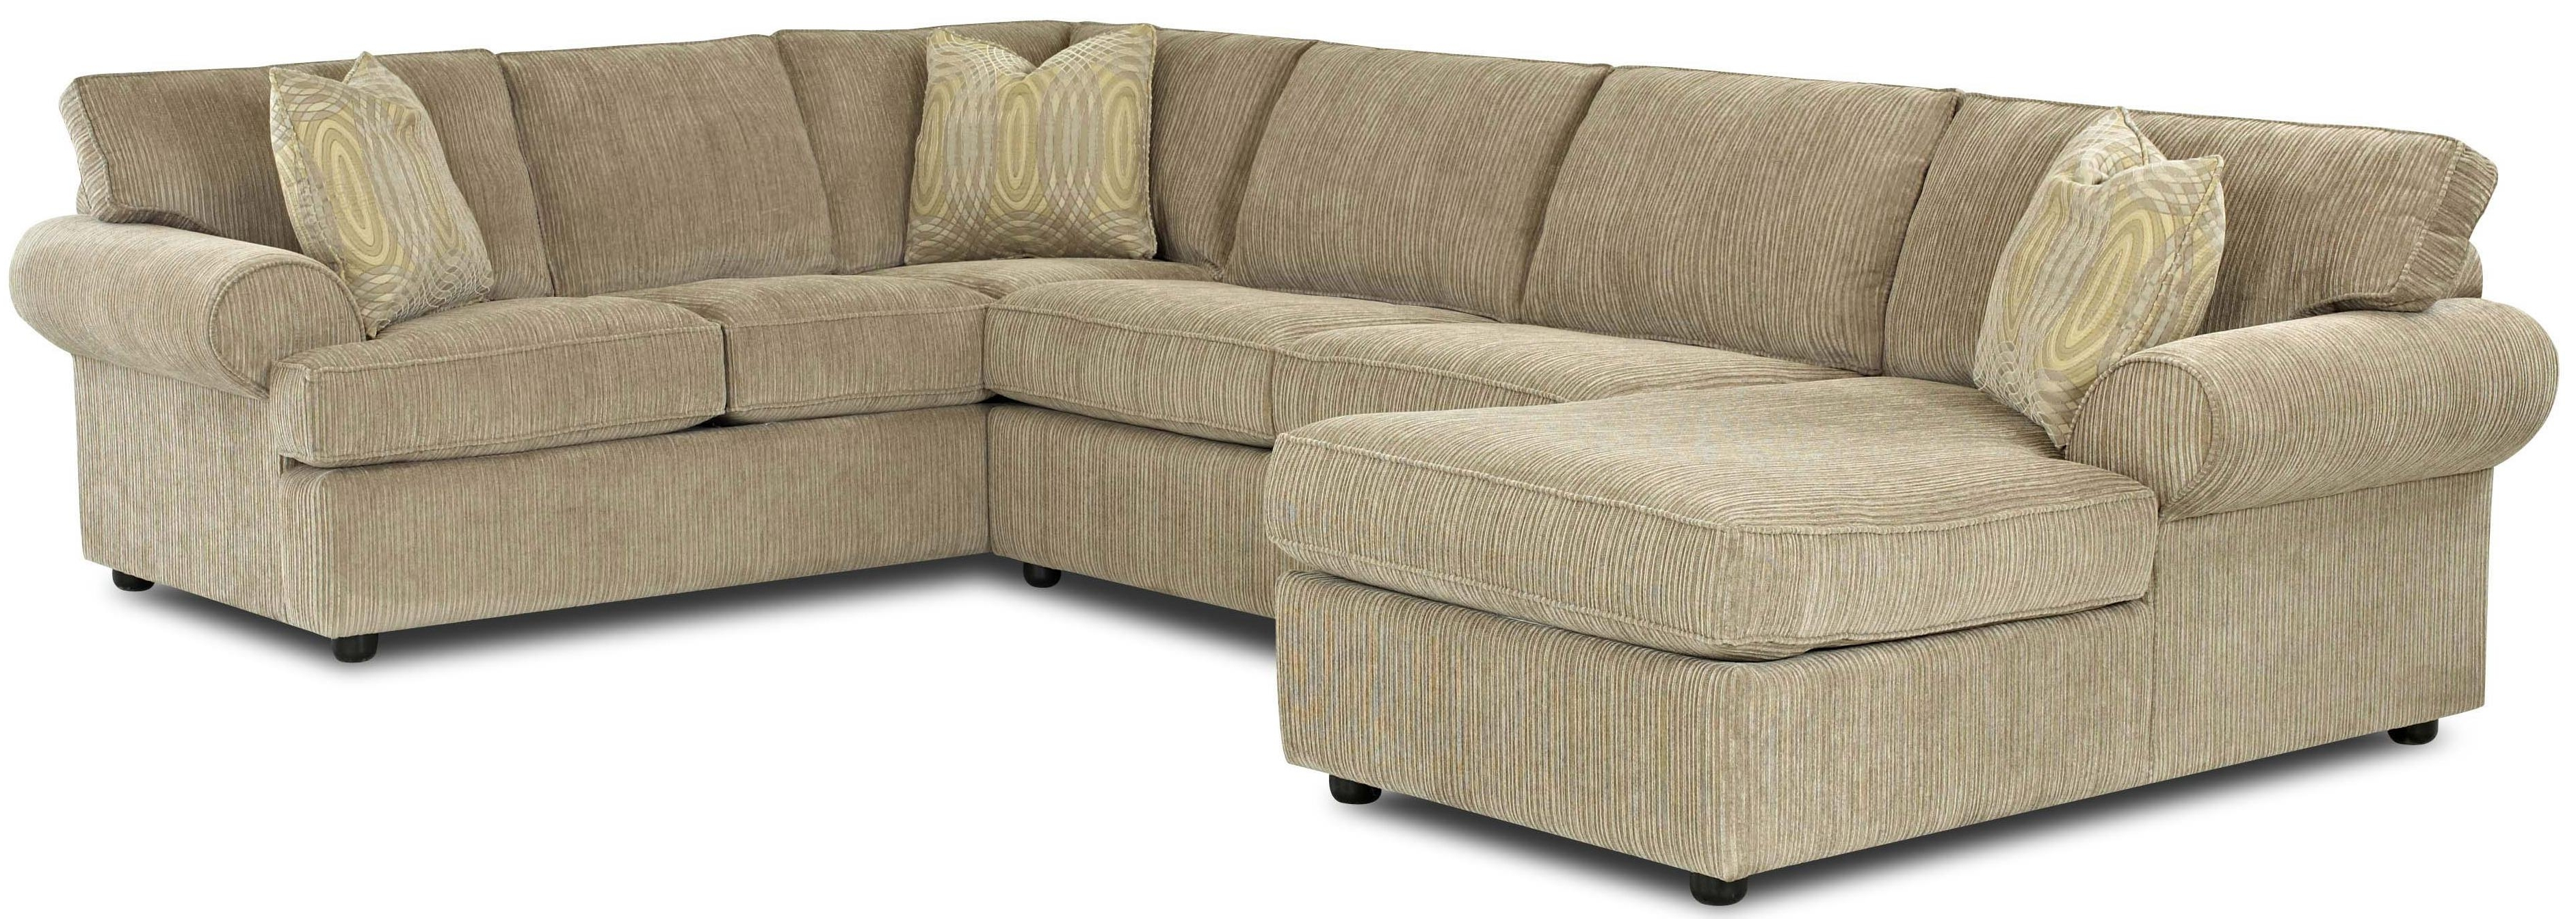 Klaussner Julington Transitional Sectional Sofa With Rolled Arms Within 2019 Eugene Oregon Sectional Sofas (View 12 of 20)